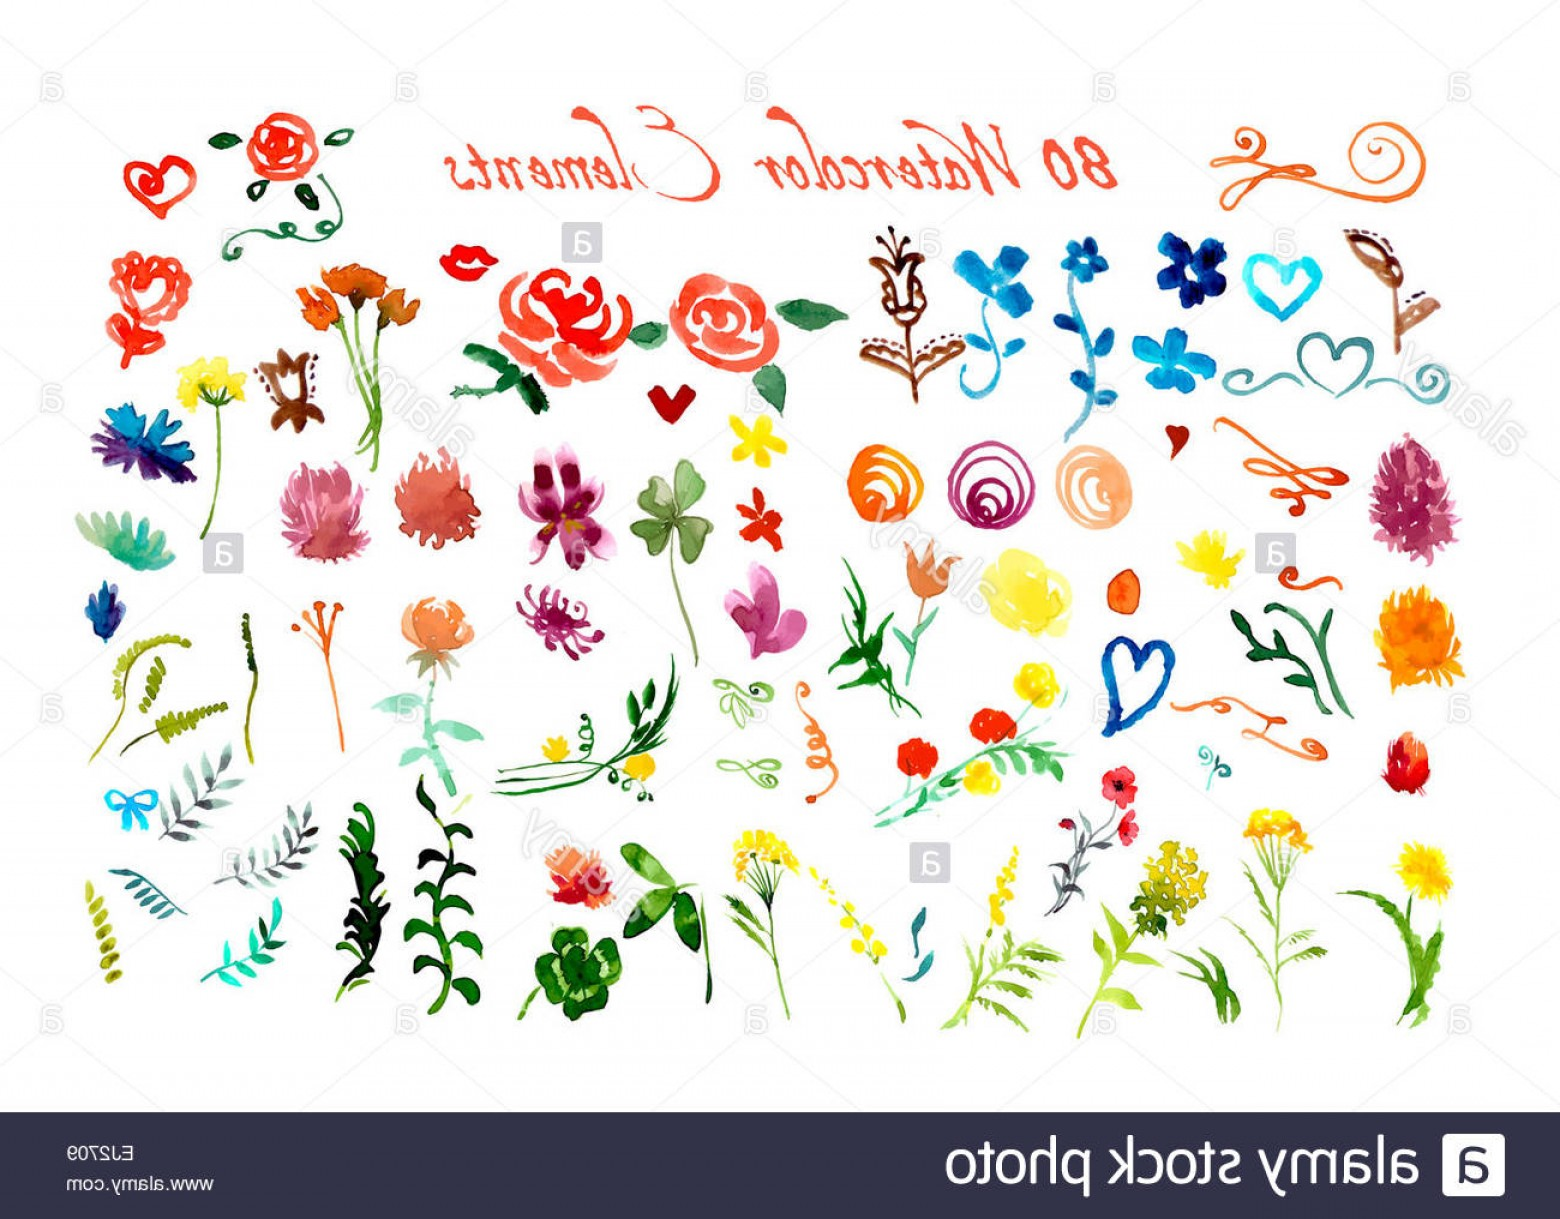 Flower Elements Vector: Stock Photo Set Of Watercolor Floral Elements Vector Illustration